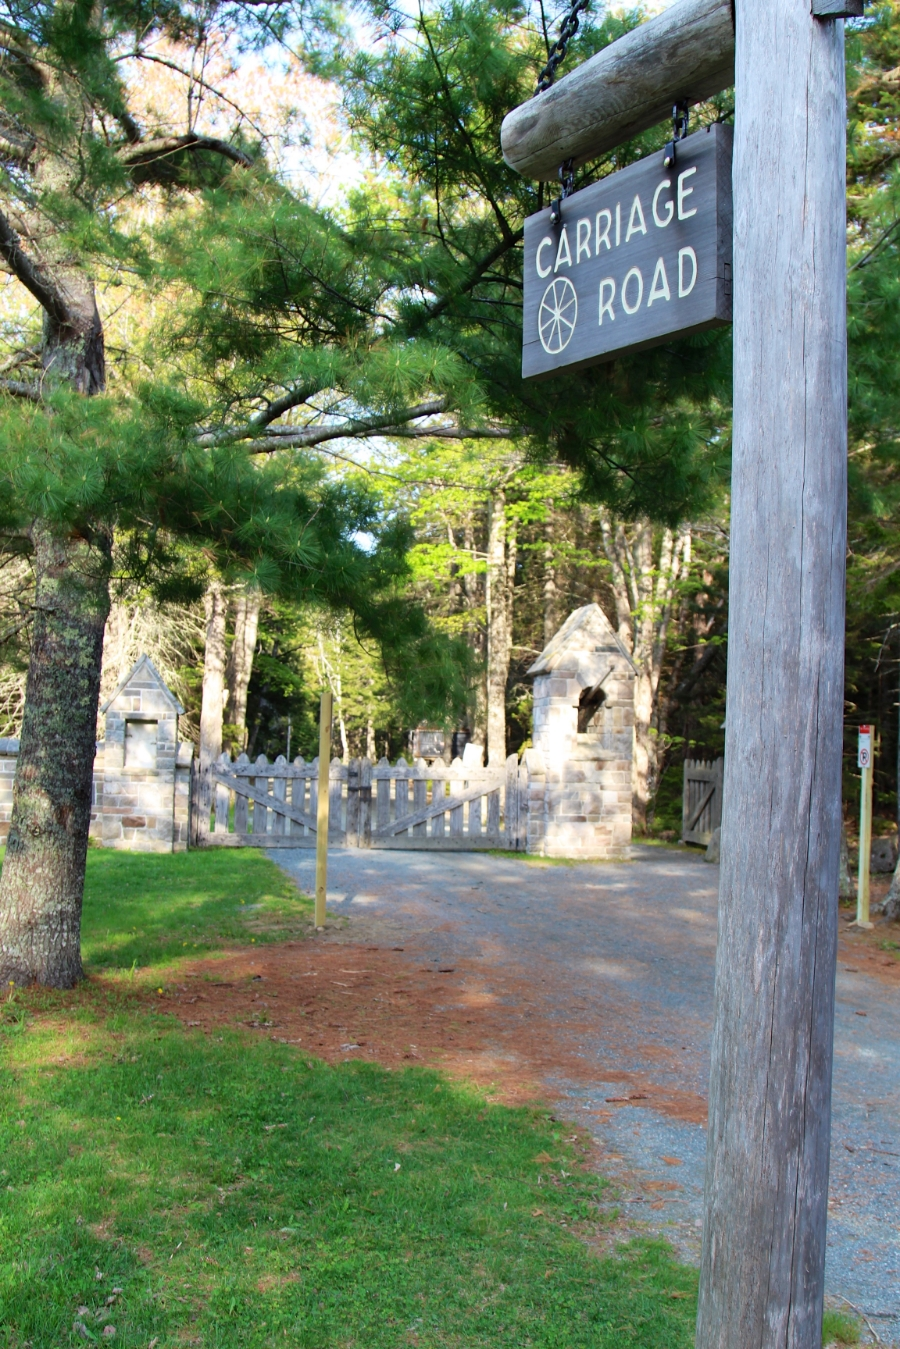 There are over 120 miles of carriage trails throughout Acadia National Park.